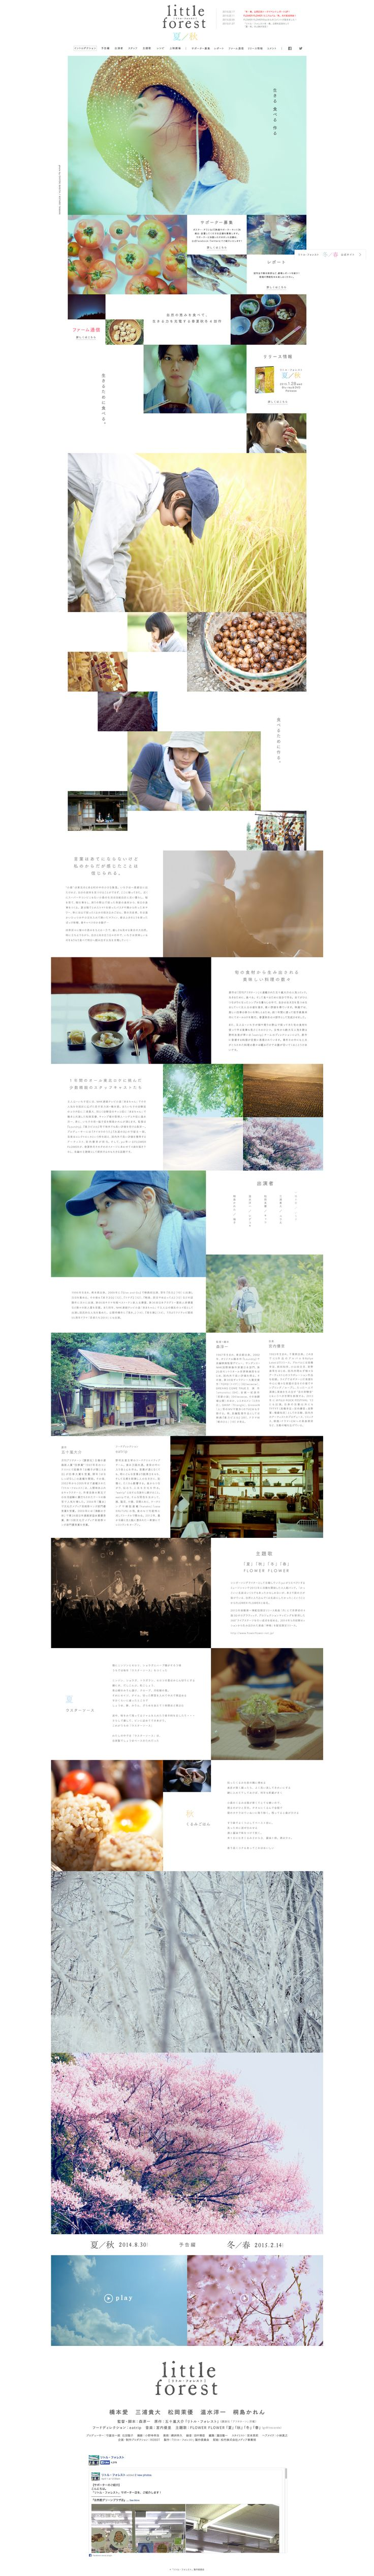 [Photo Layout] Little Forest http://littleforest-movie.jp/sa/